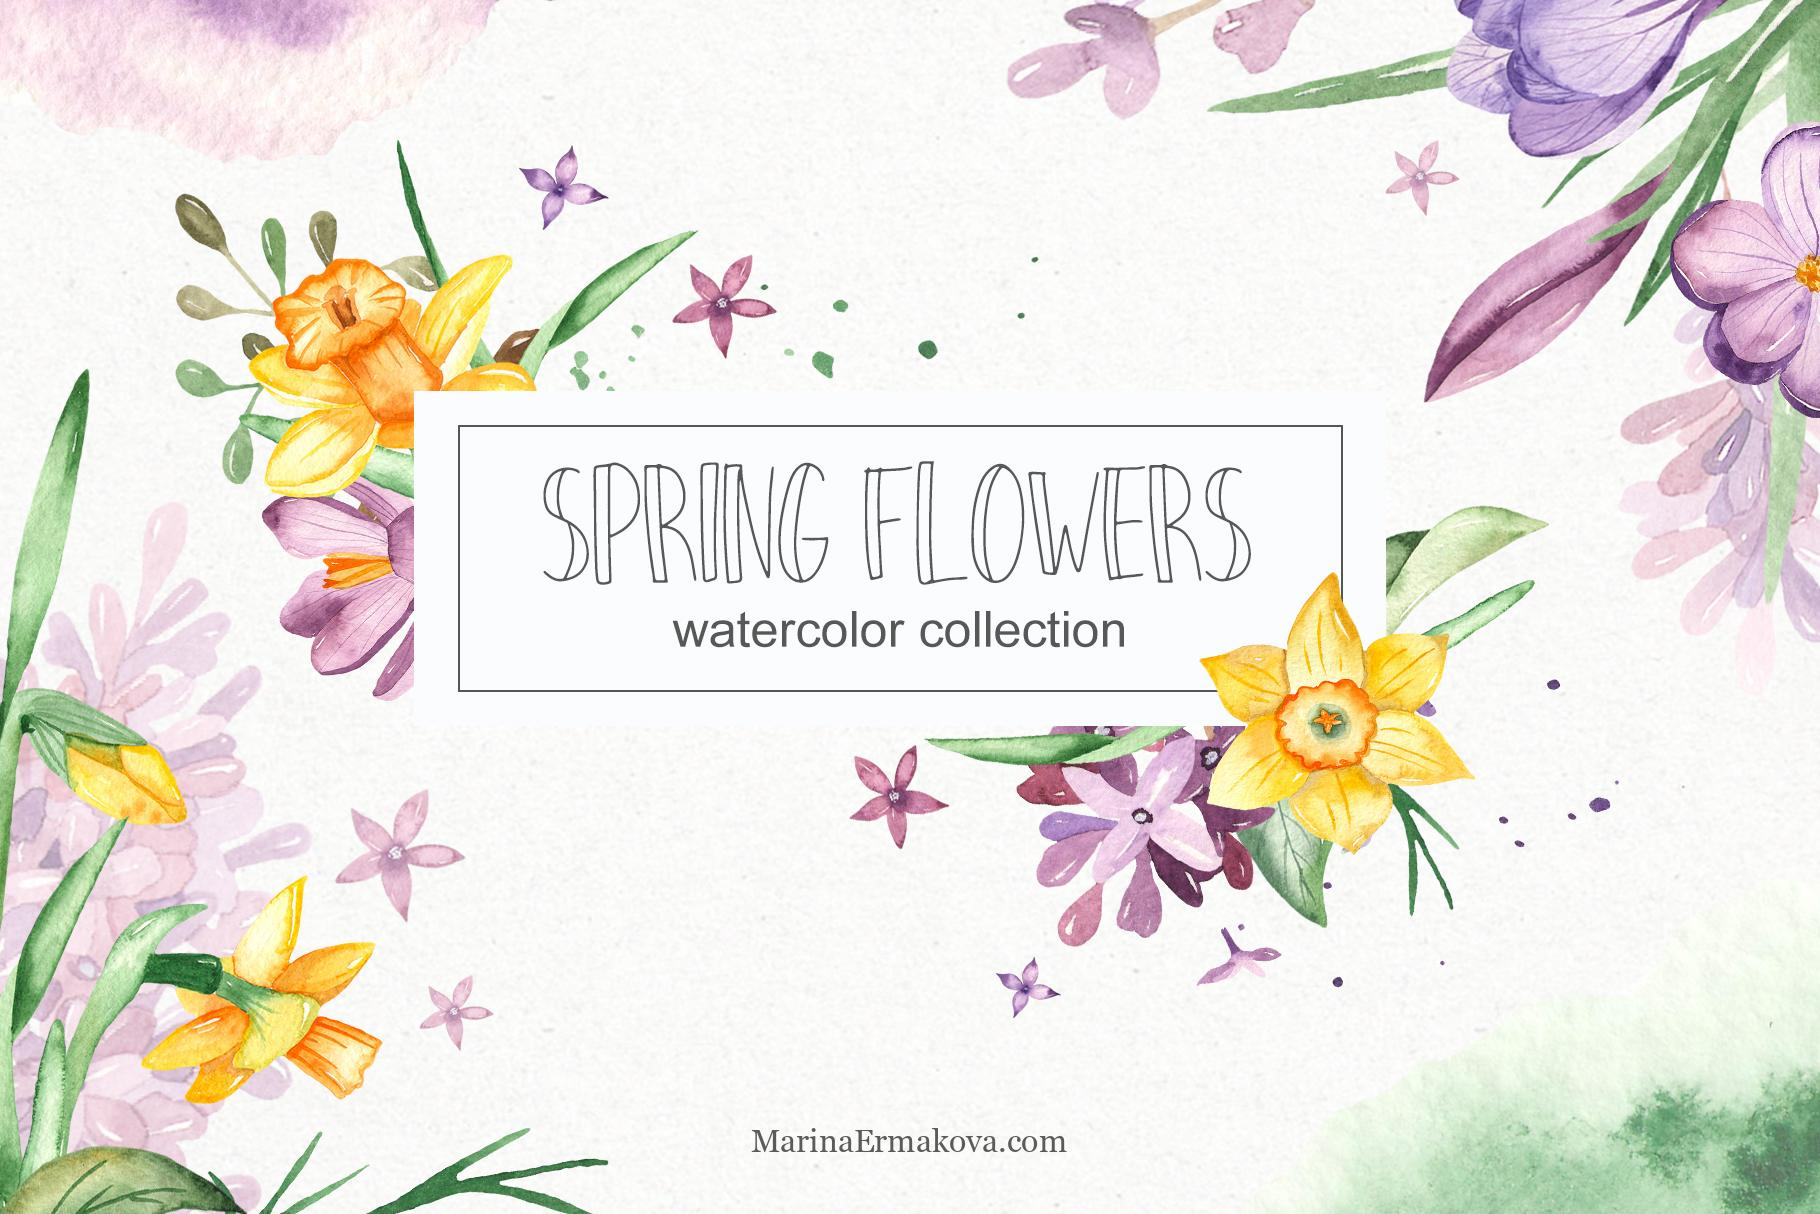 Watercolor spring flowers clipart